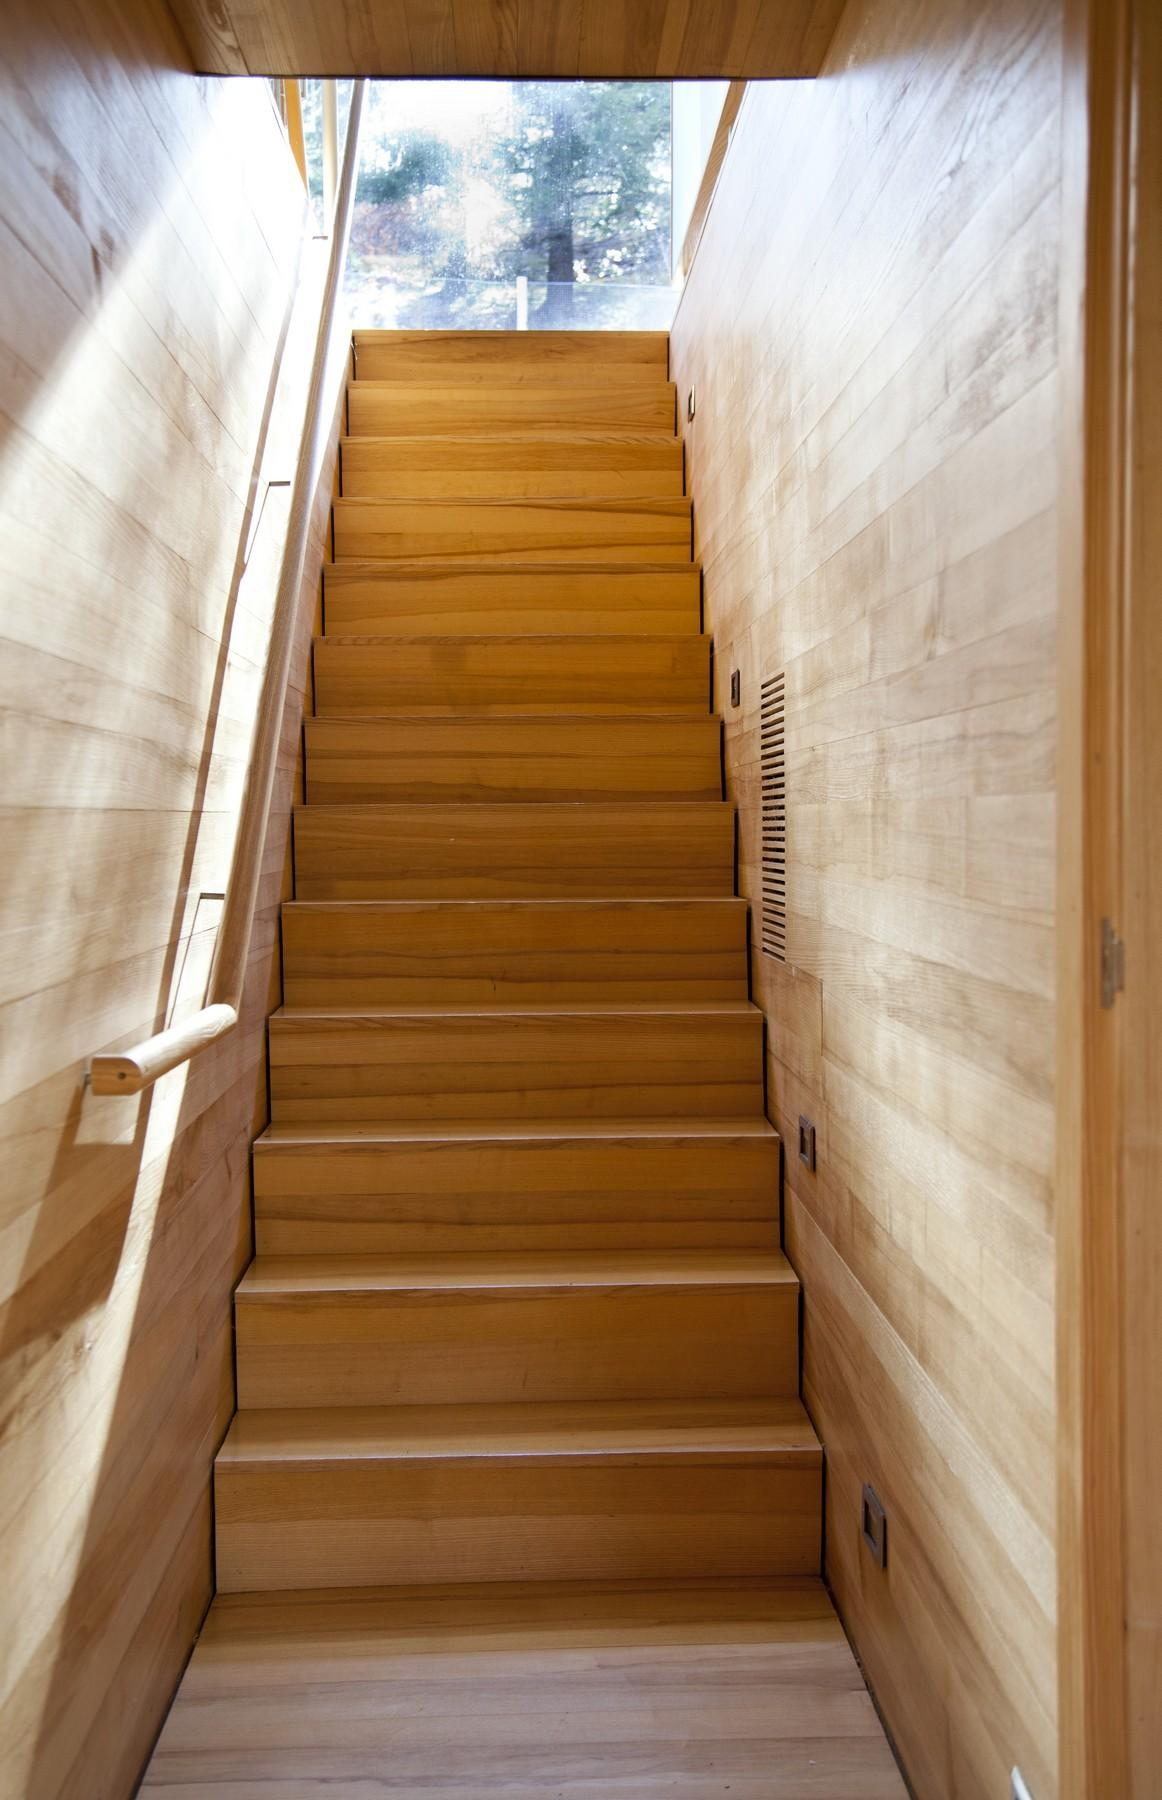 Stairs, Rural Retreat in Bantam, Connecticut